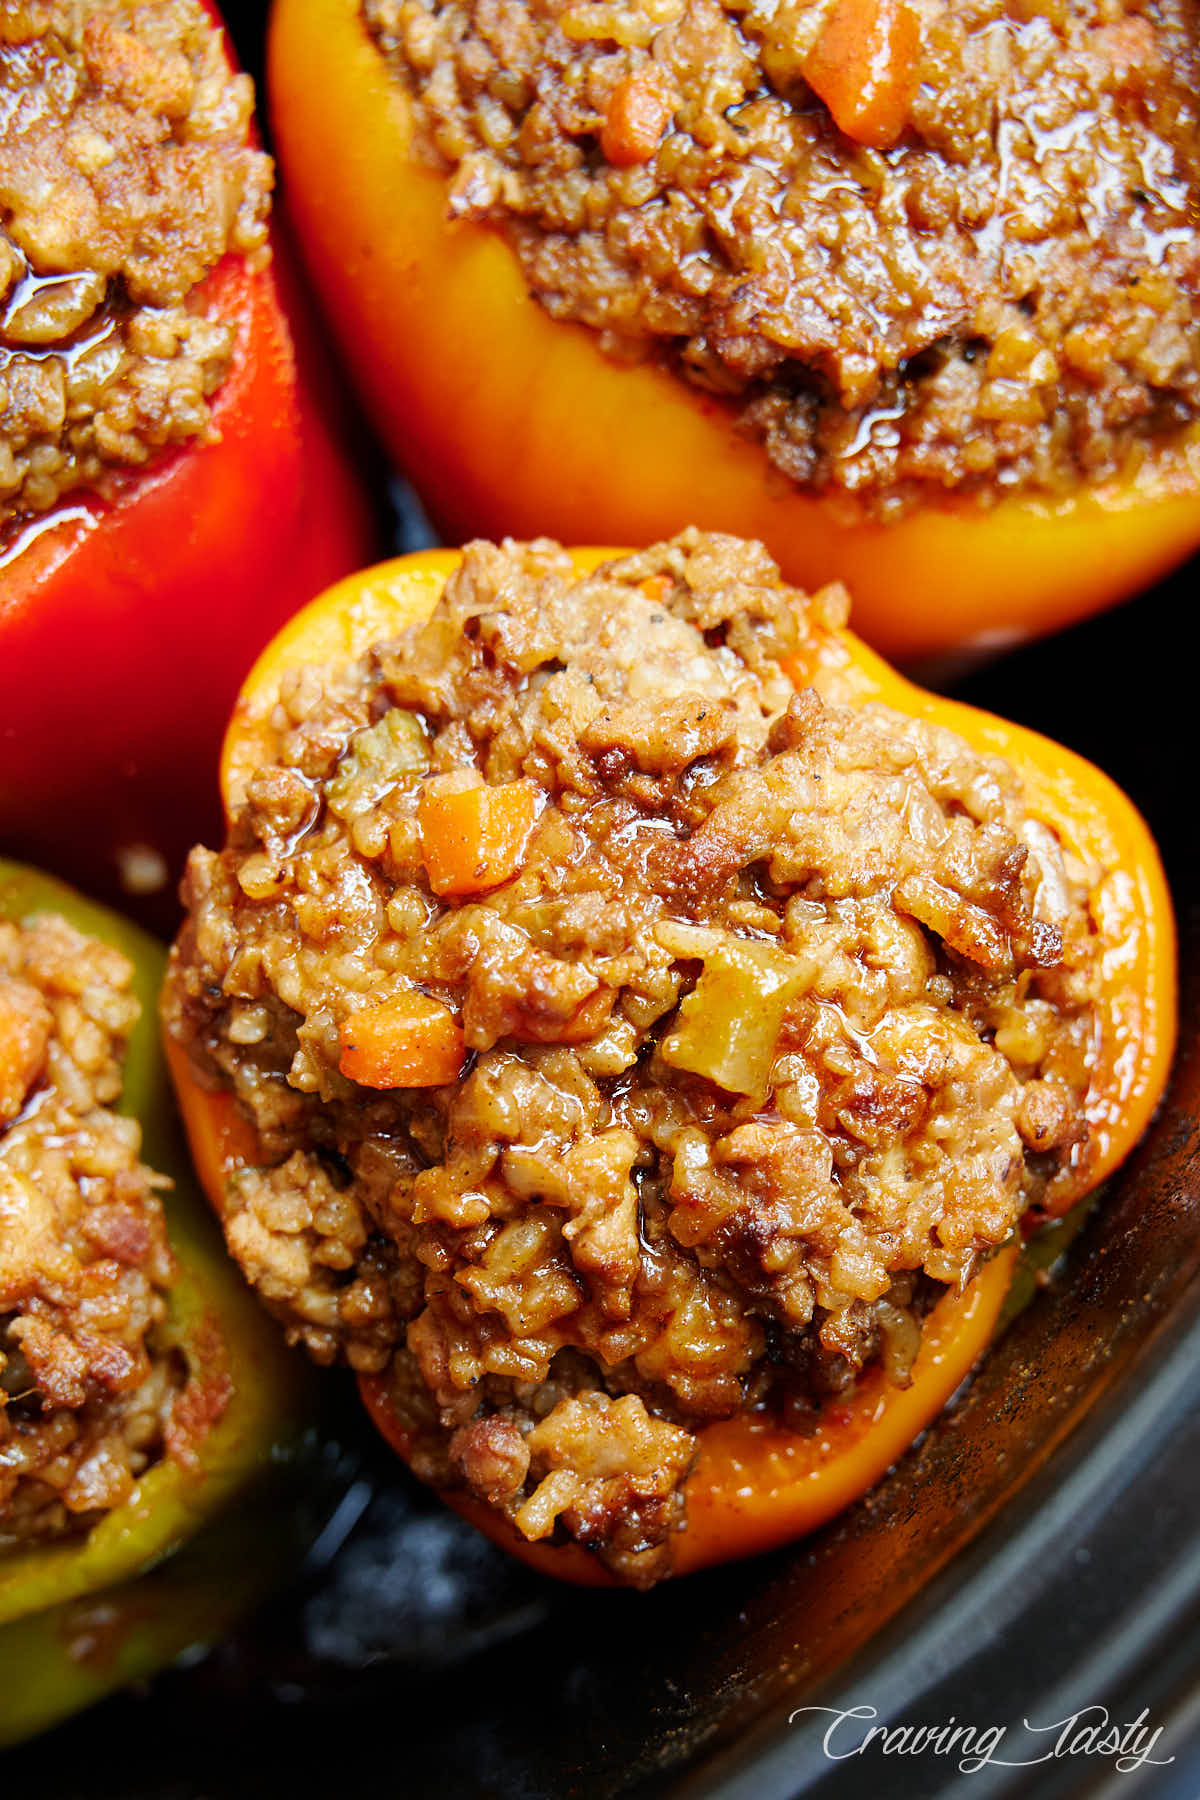 Yellow bell pepper stuffed with ground beef, pork and rice.